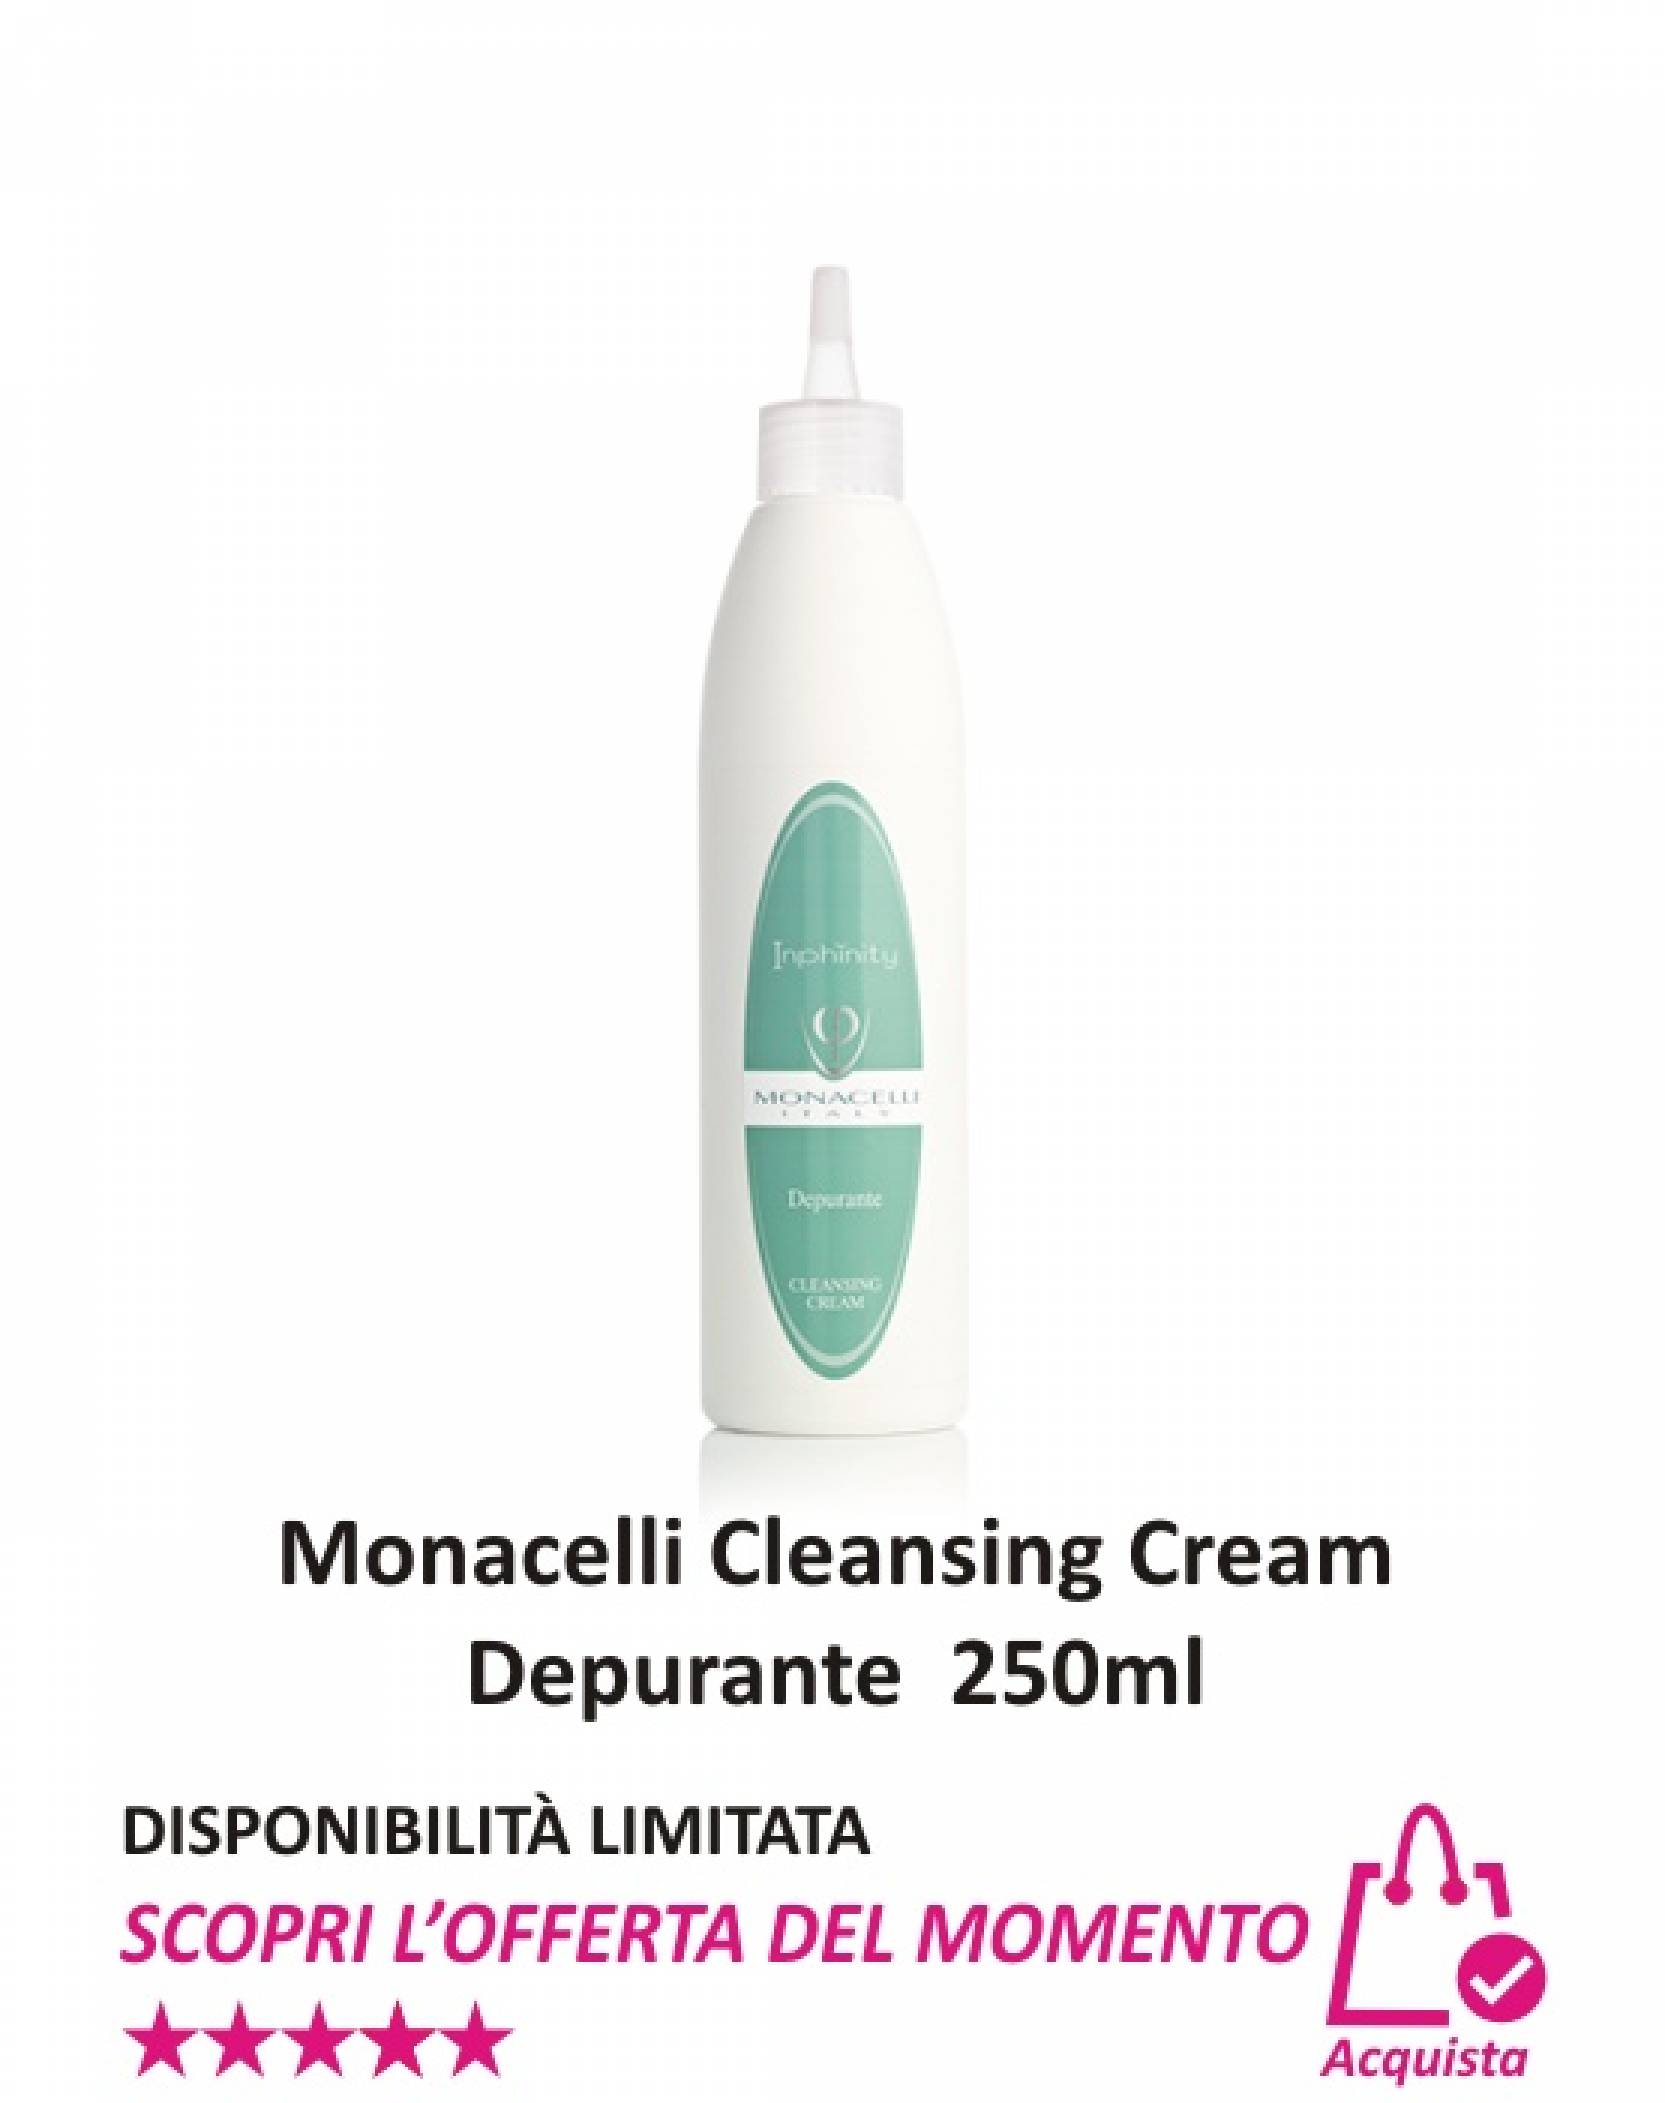 Monacelli Cleansing Cream Depurante 250 ml